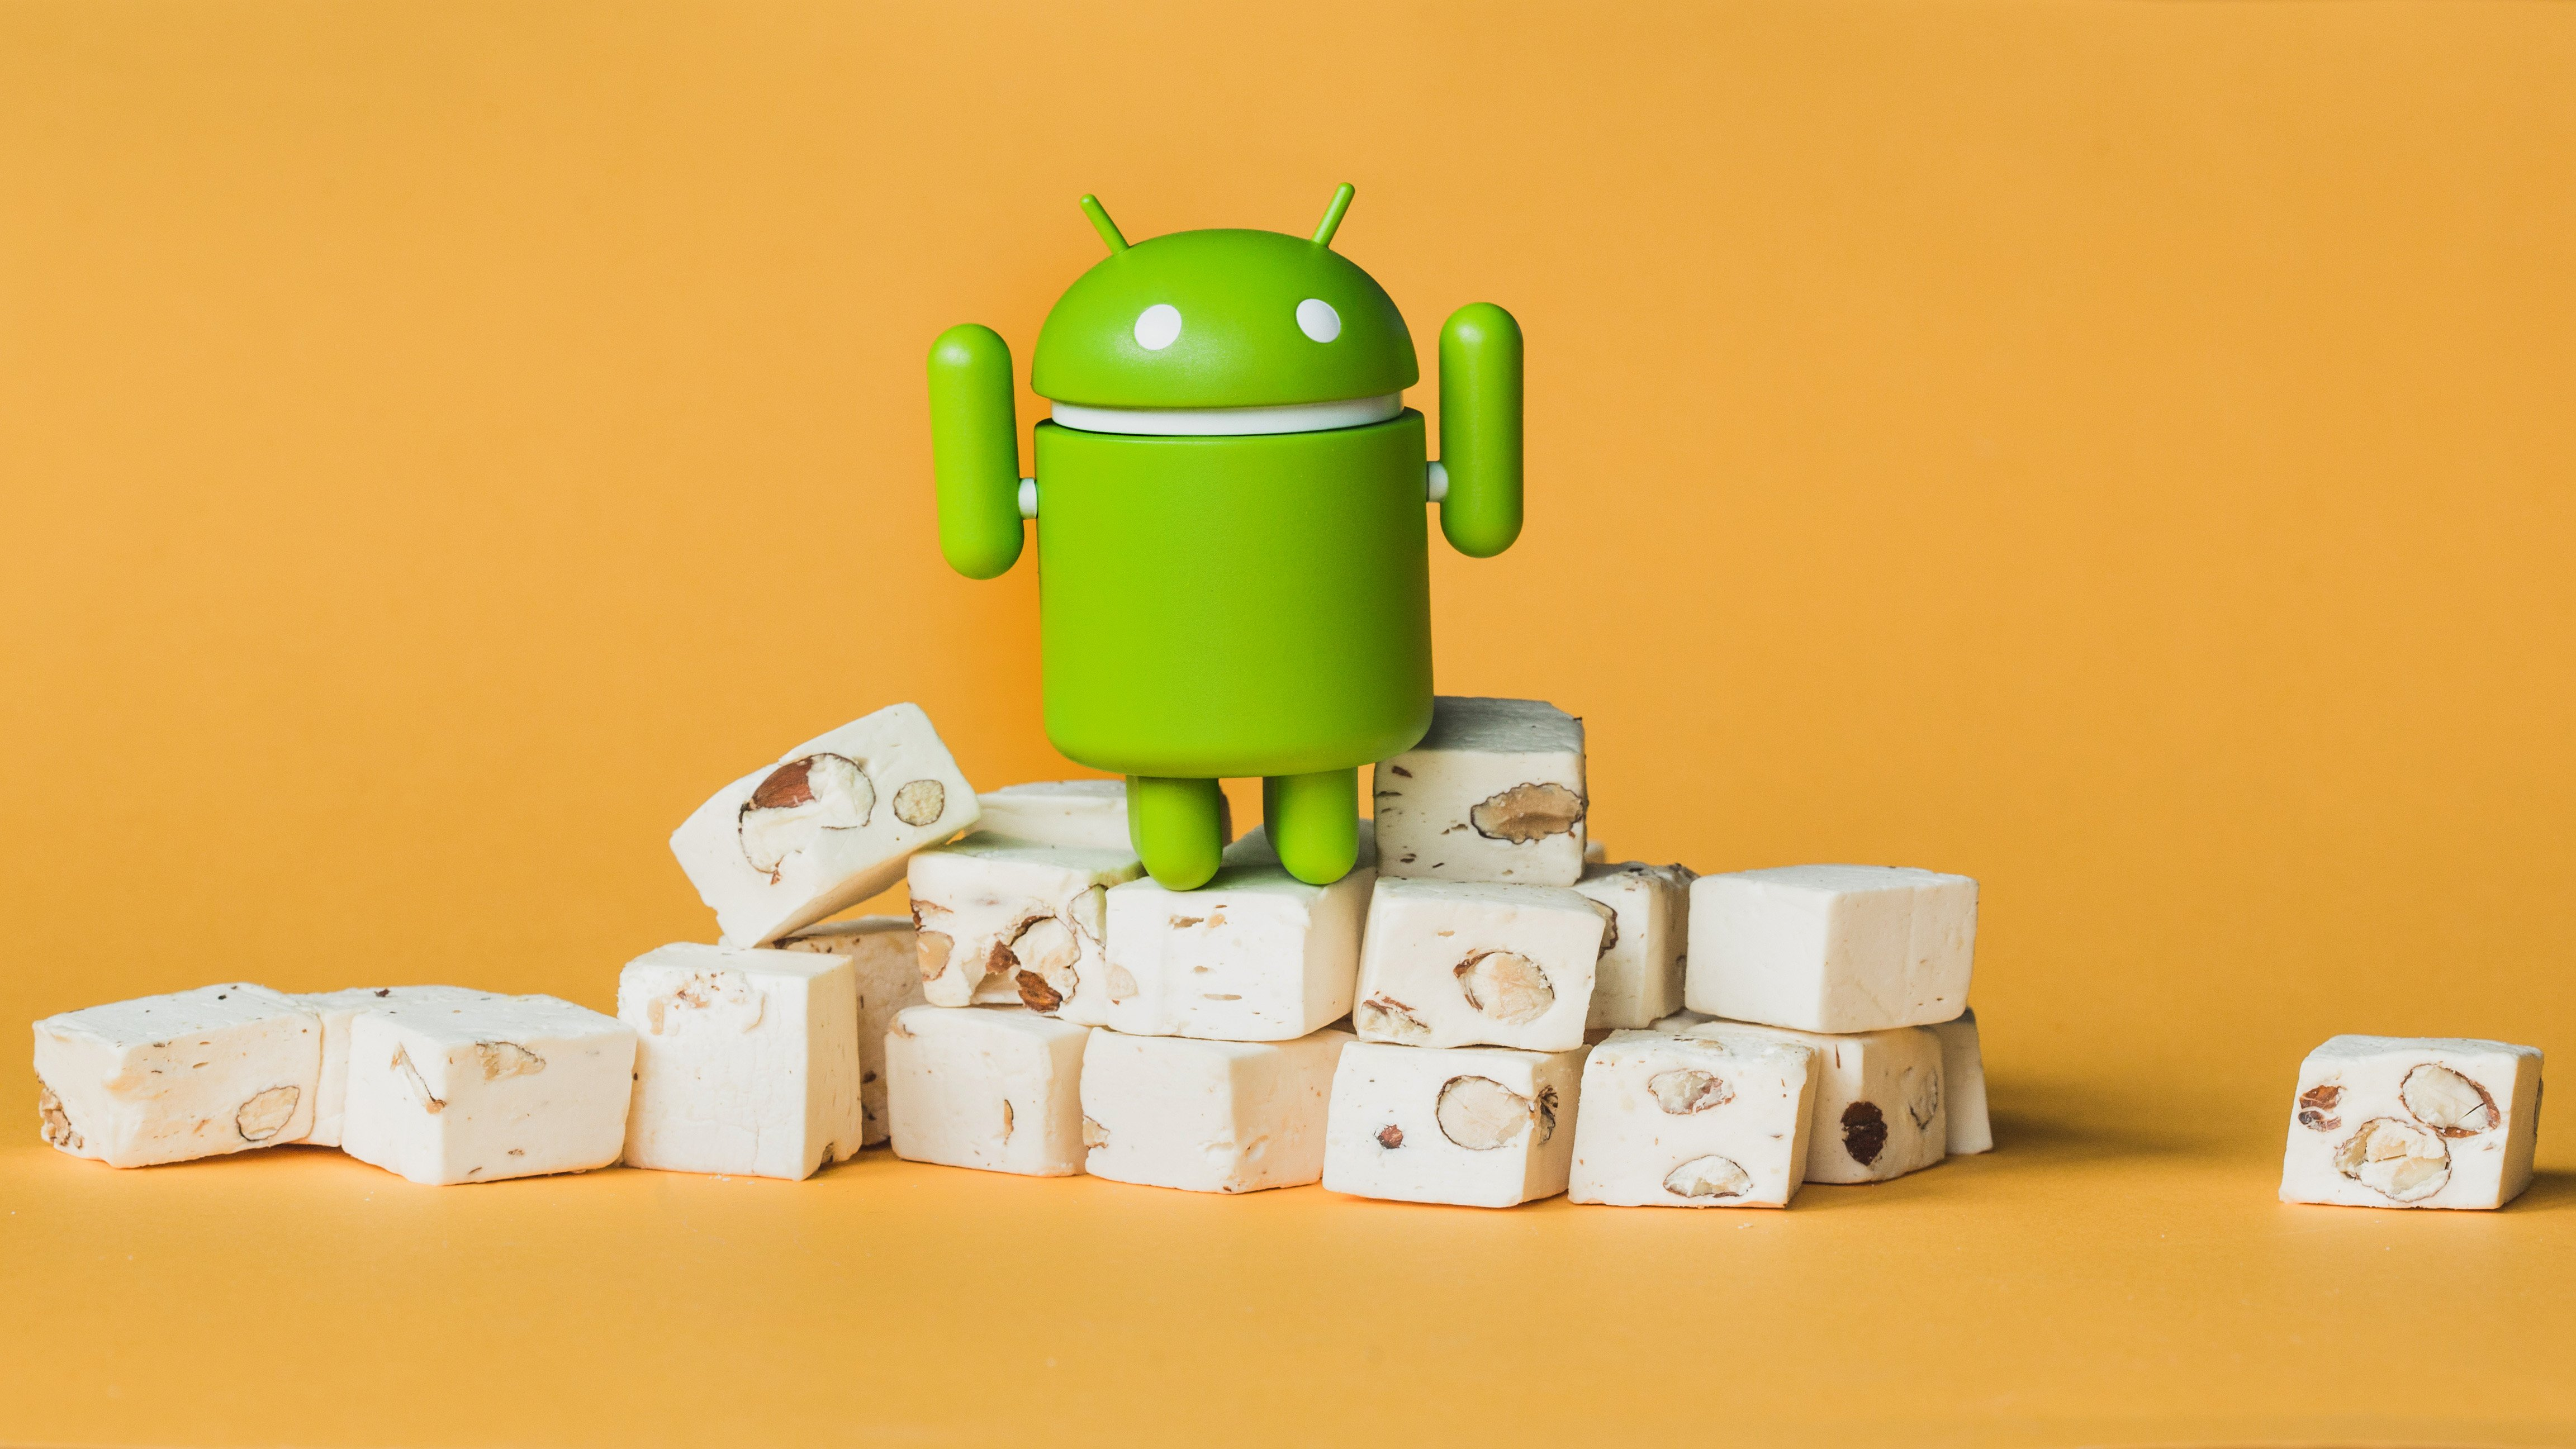 Android 7.0 Nougat update overview for smartphones and tablets ...